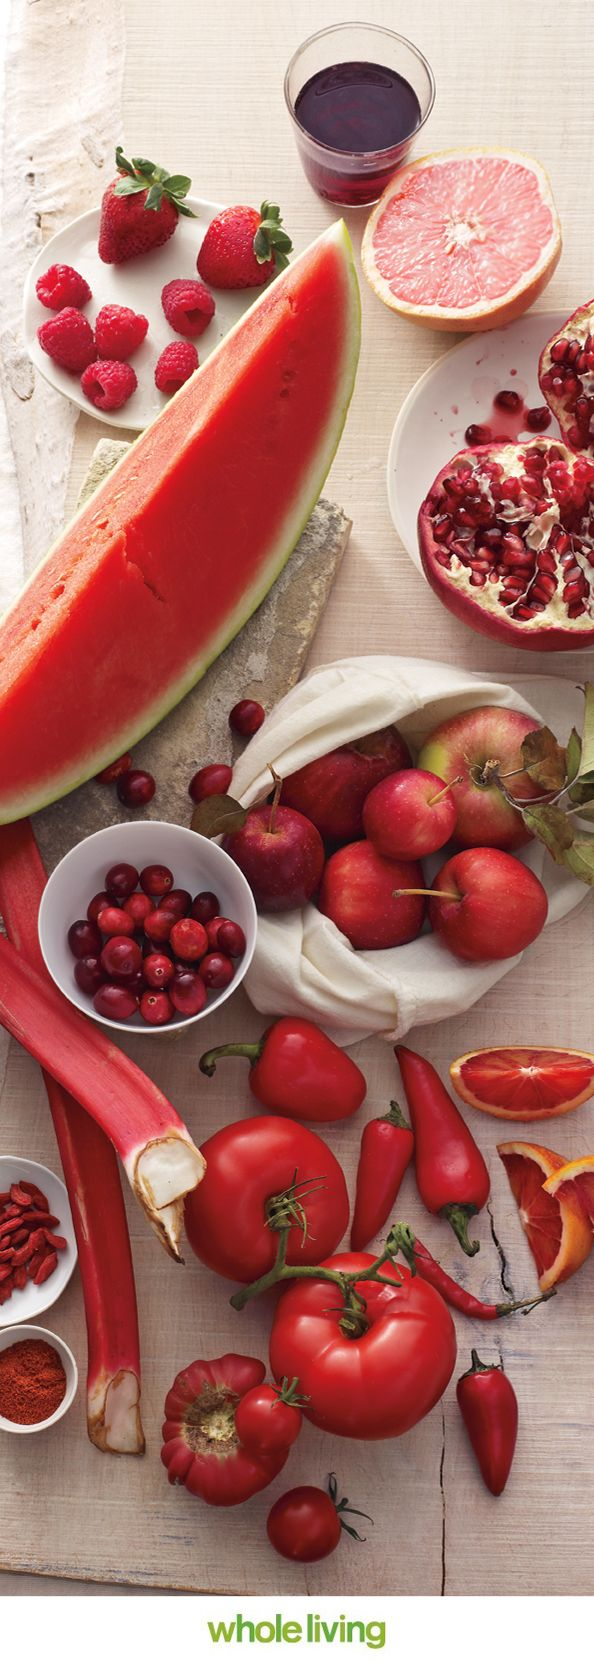 Eat your colors! Red foods are rich in resveratrol, capsaicin, & lycopene